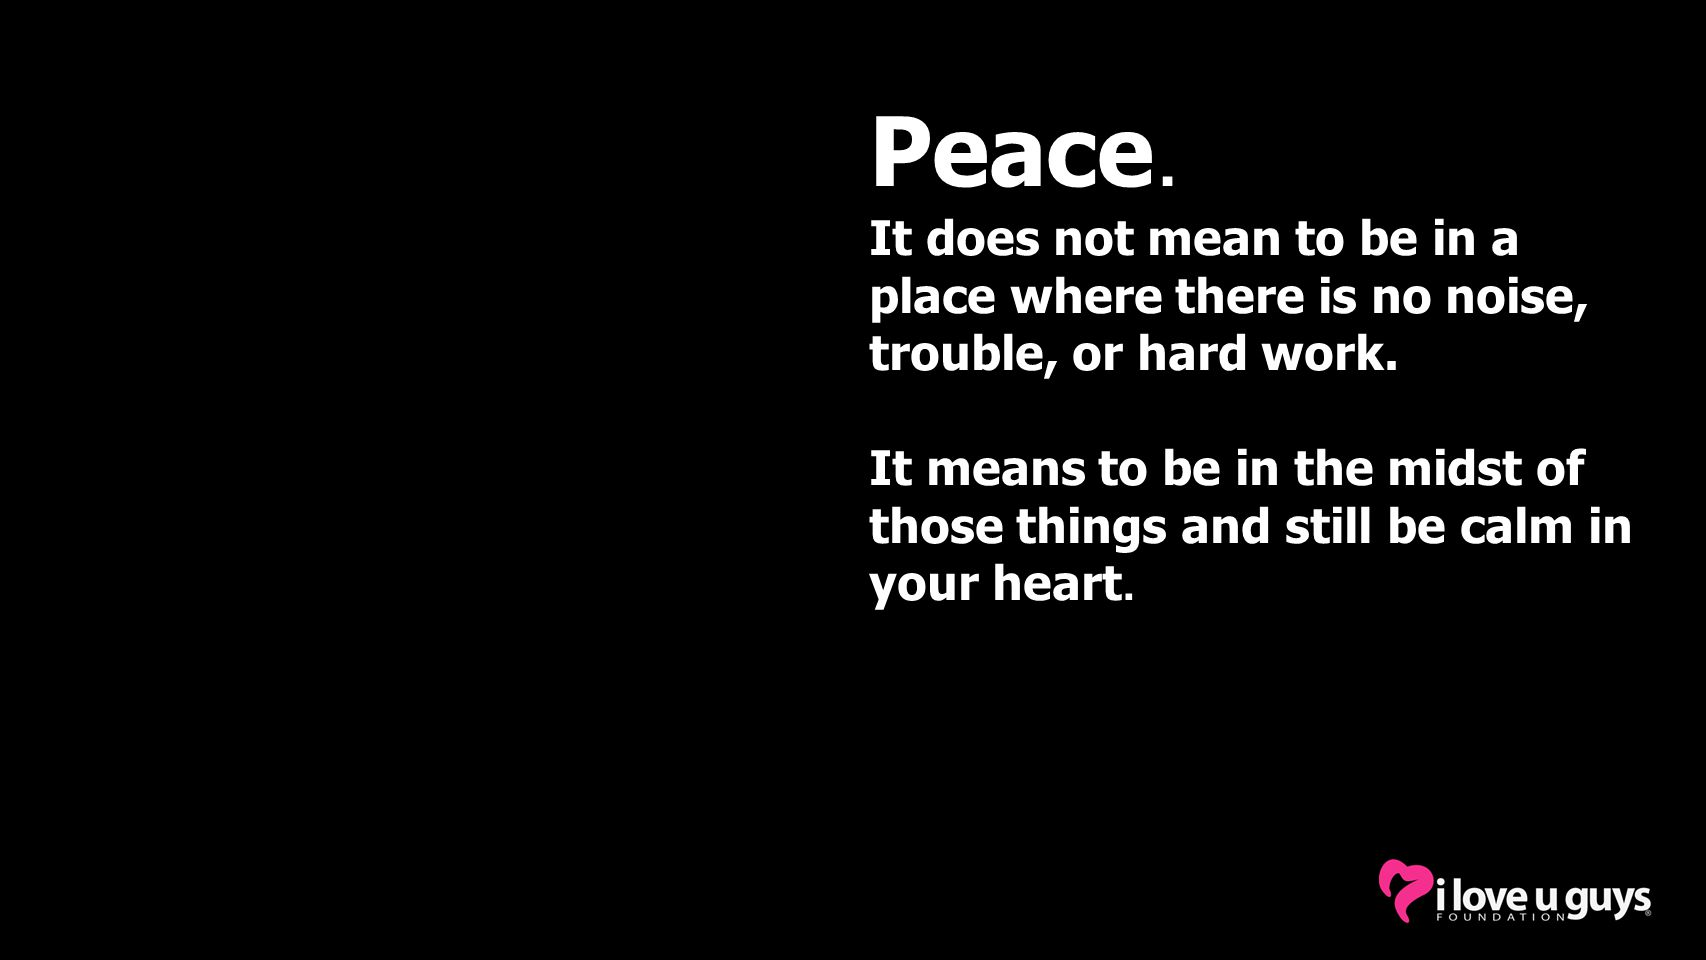 Peace. It does not mean to be in a place where there is no noise, trouble, or hard work.